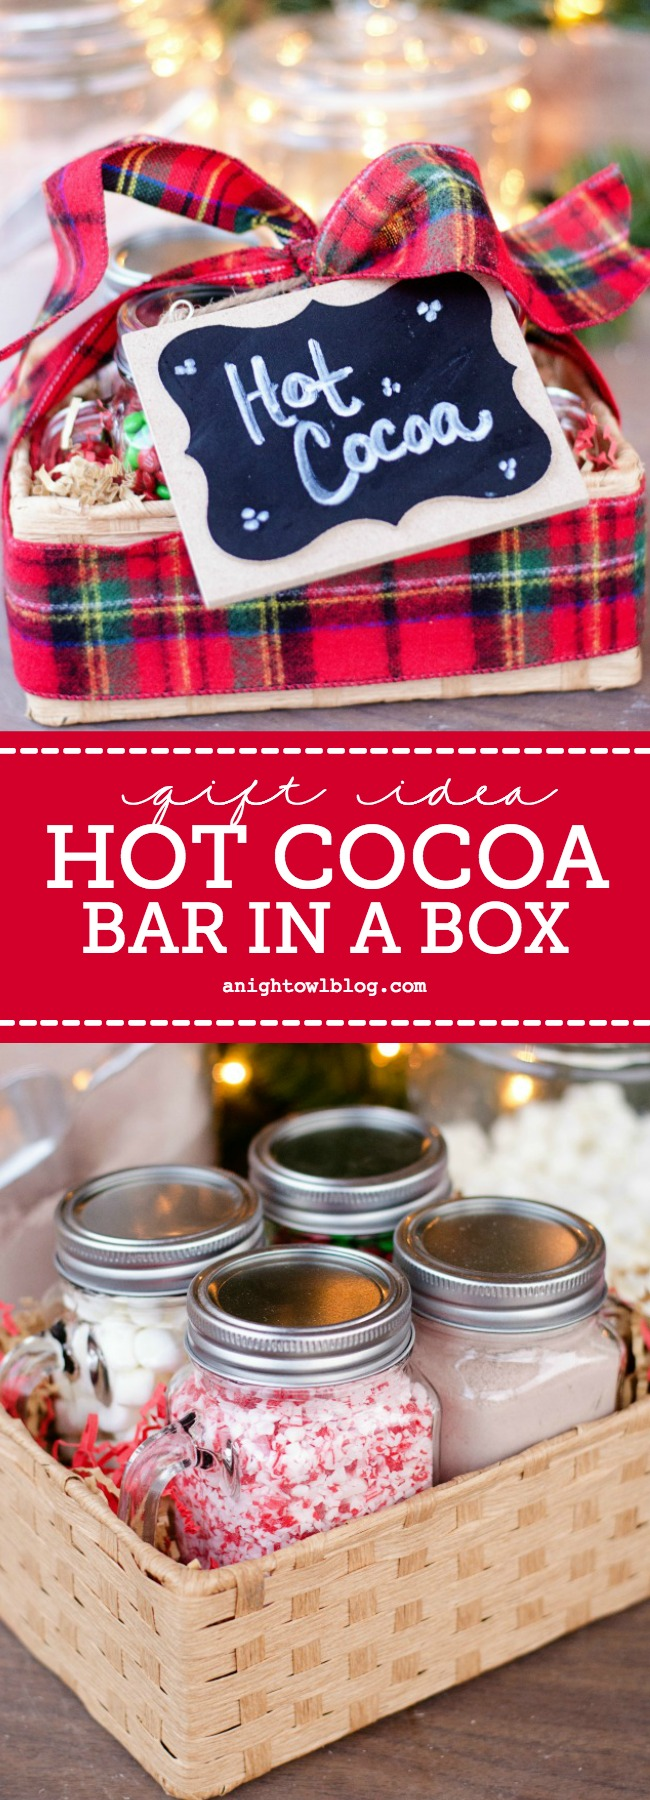 Looking for a fun and unique semi-homemade gift this holiday season? Put together an adorable Hot Cocoa Bar in a Box!